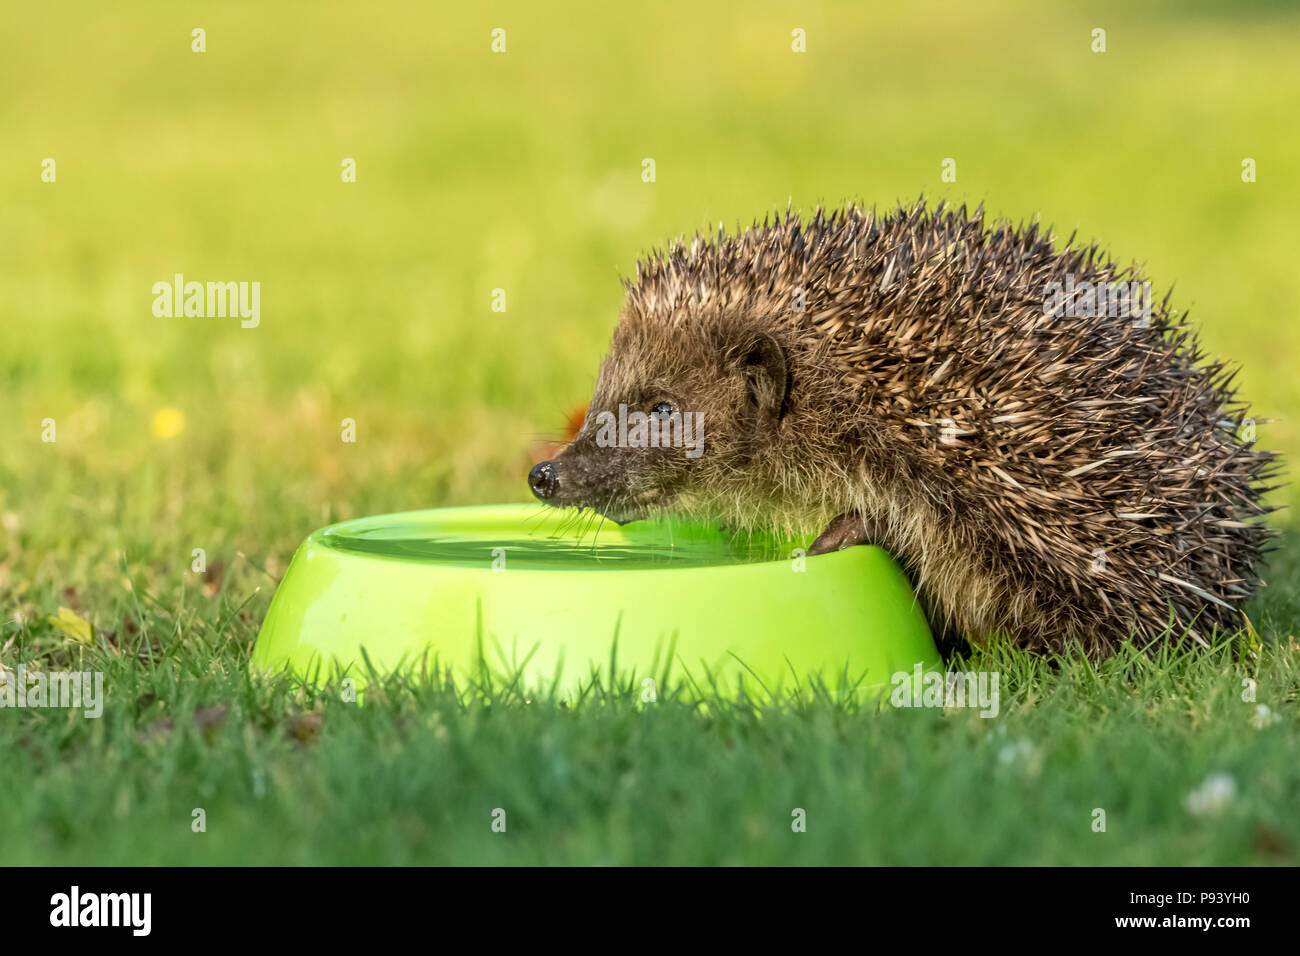 Hedgehog, wild, native, European hedgehog with green water bowl during hot weather in UK.  Landscape.  Scientific name: Erinaceus Europaeus - Stock Image